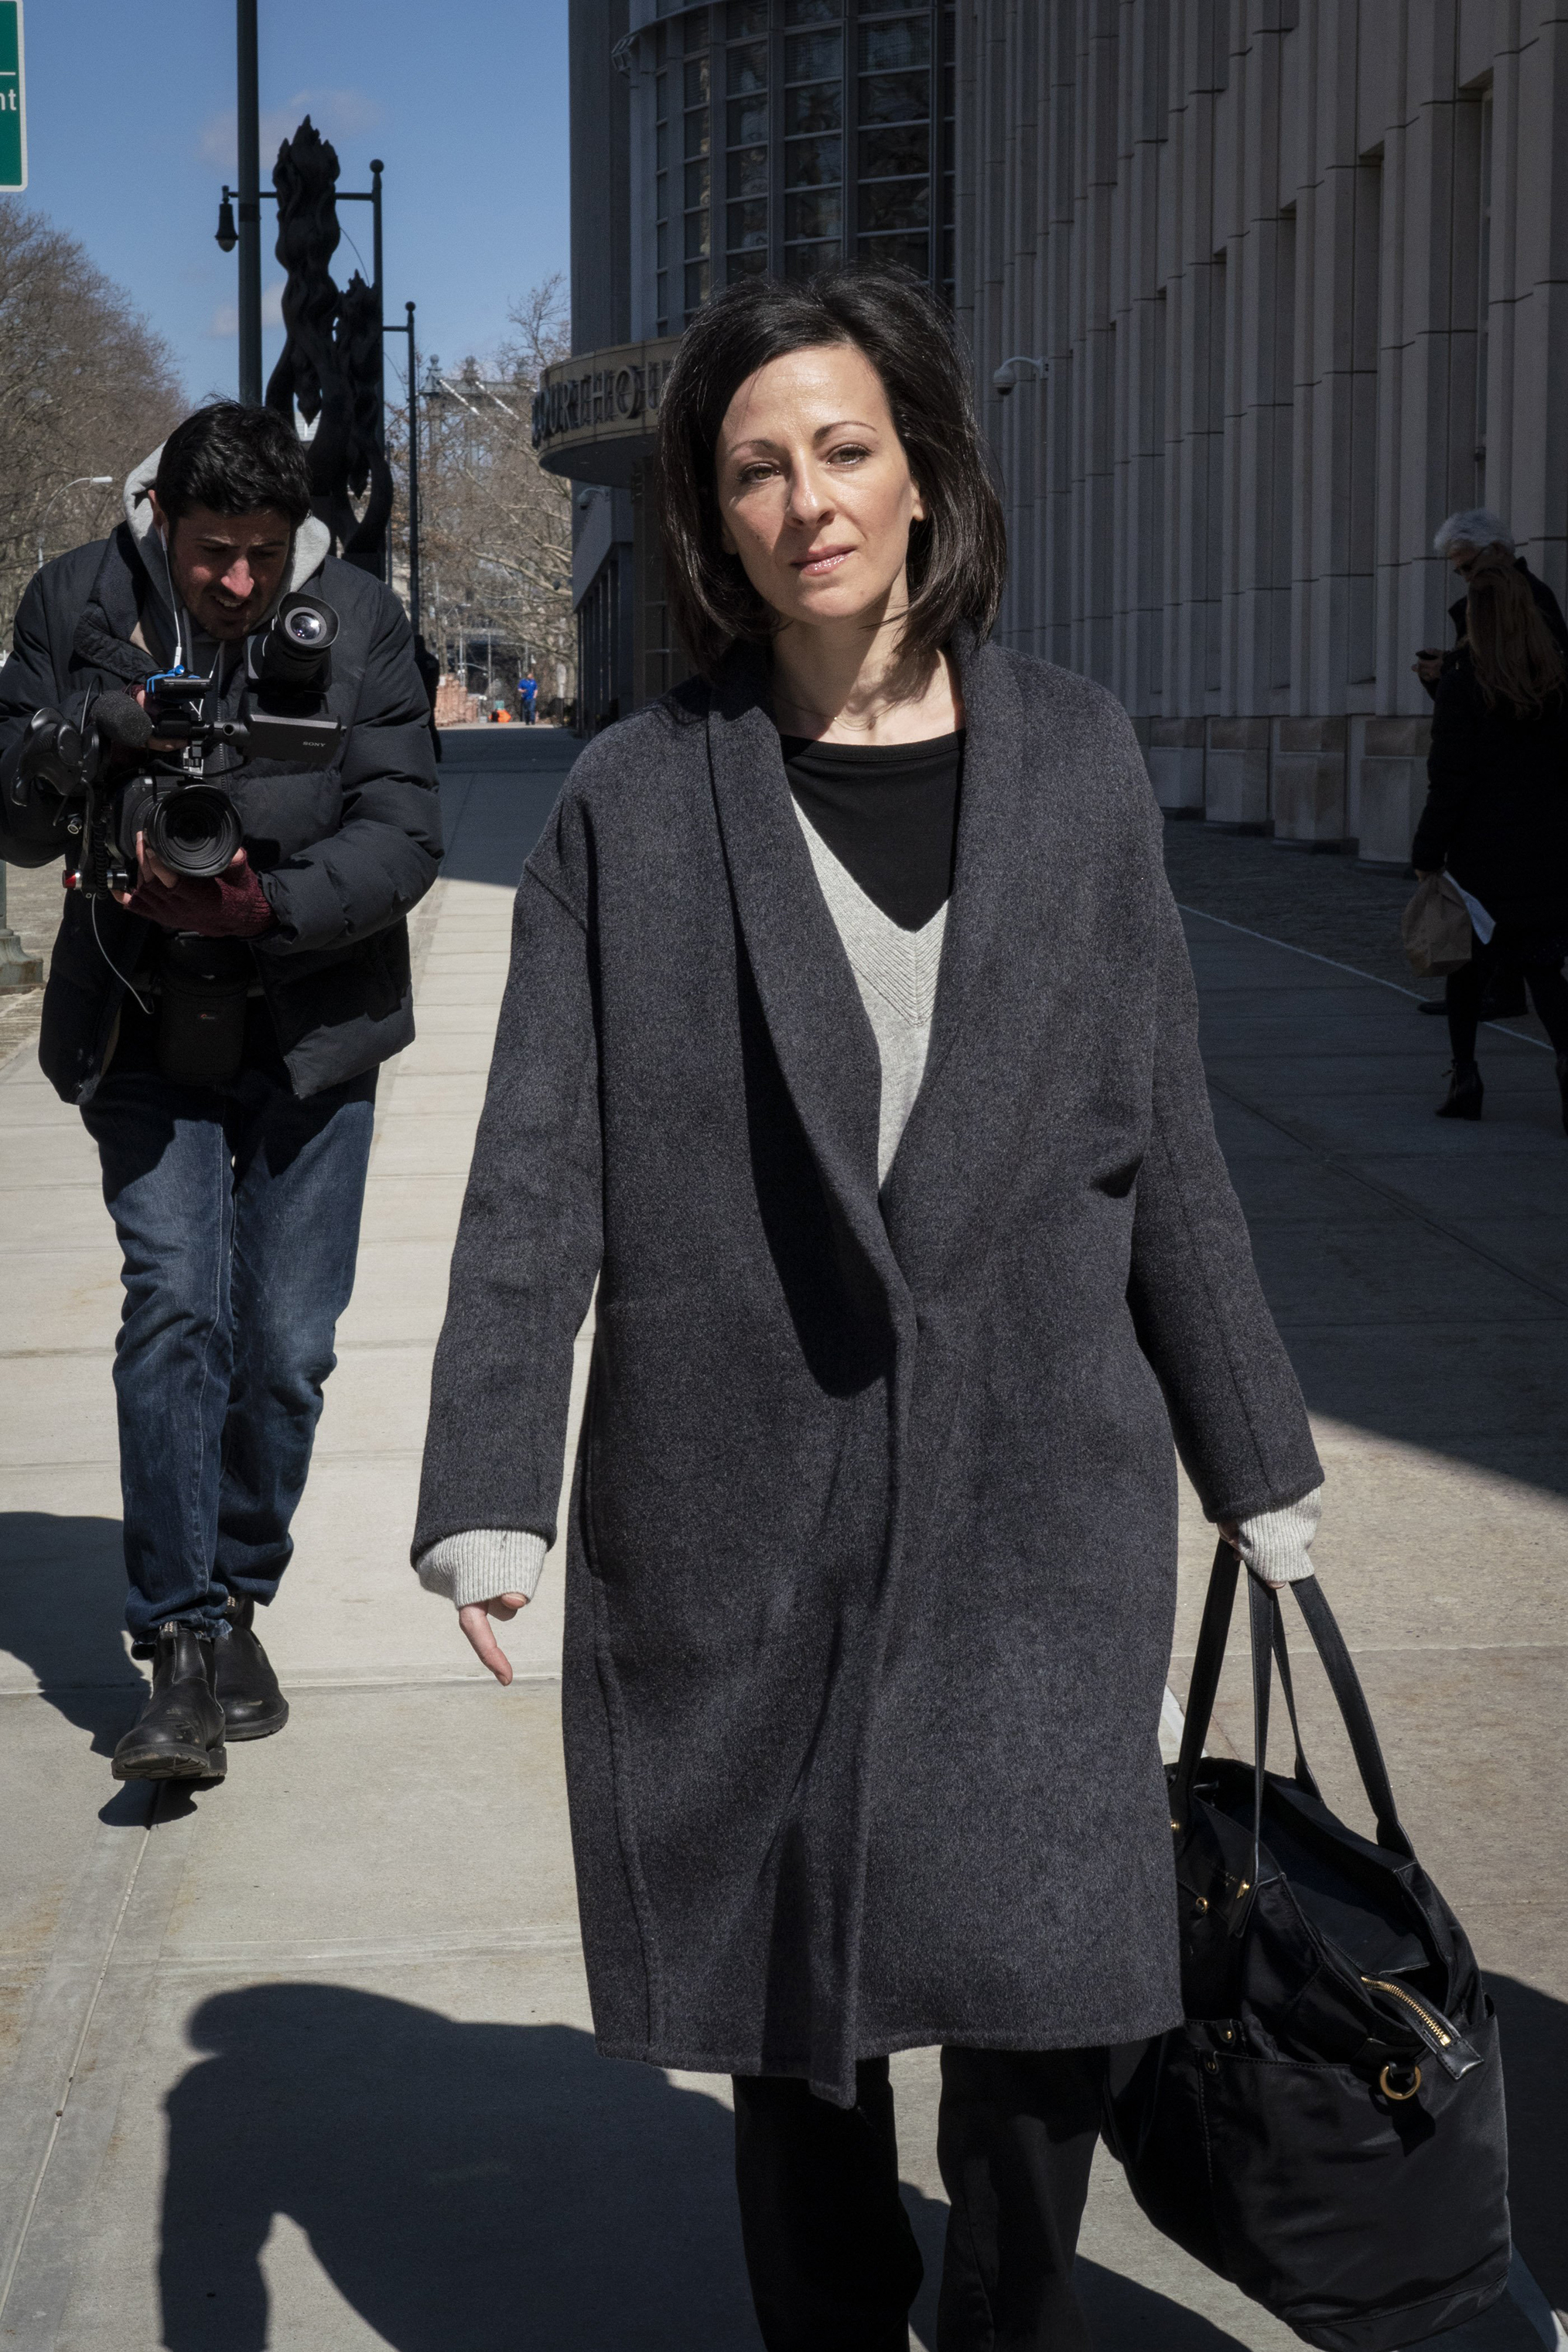 Lauren Salzman leaves the Federal Courthouse in Brooklyn on March 18, 2019.